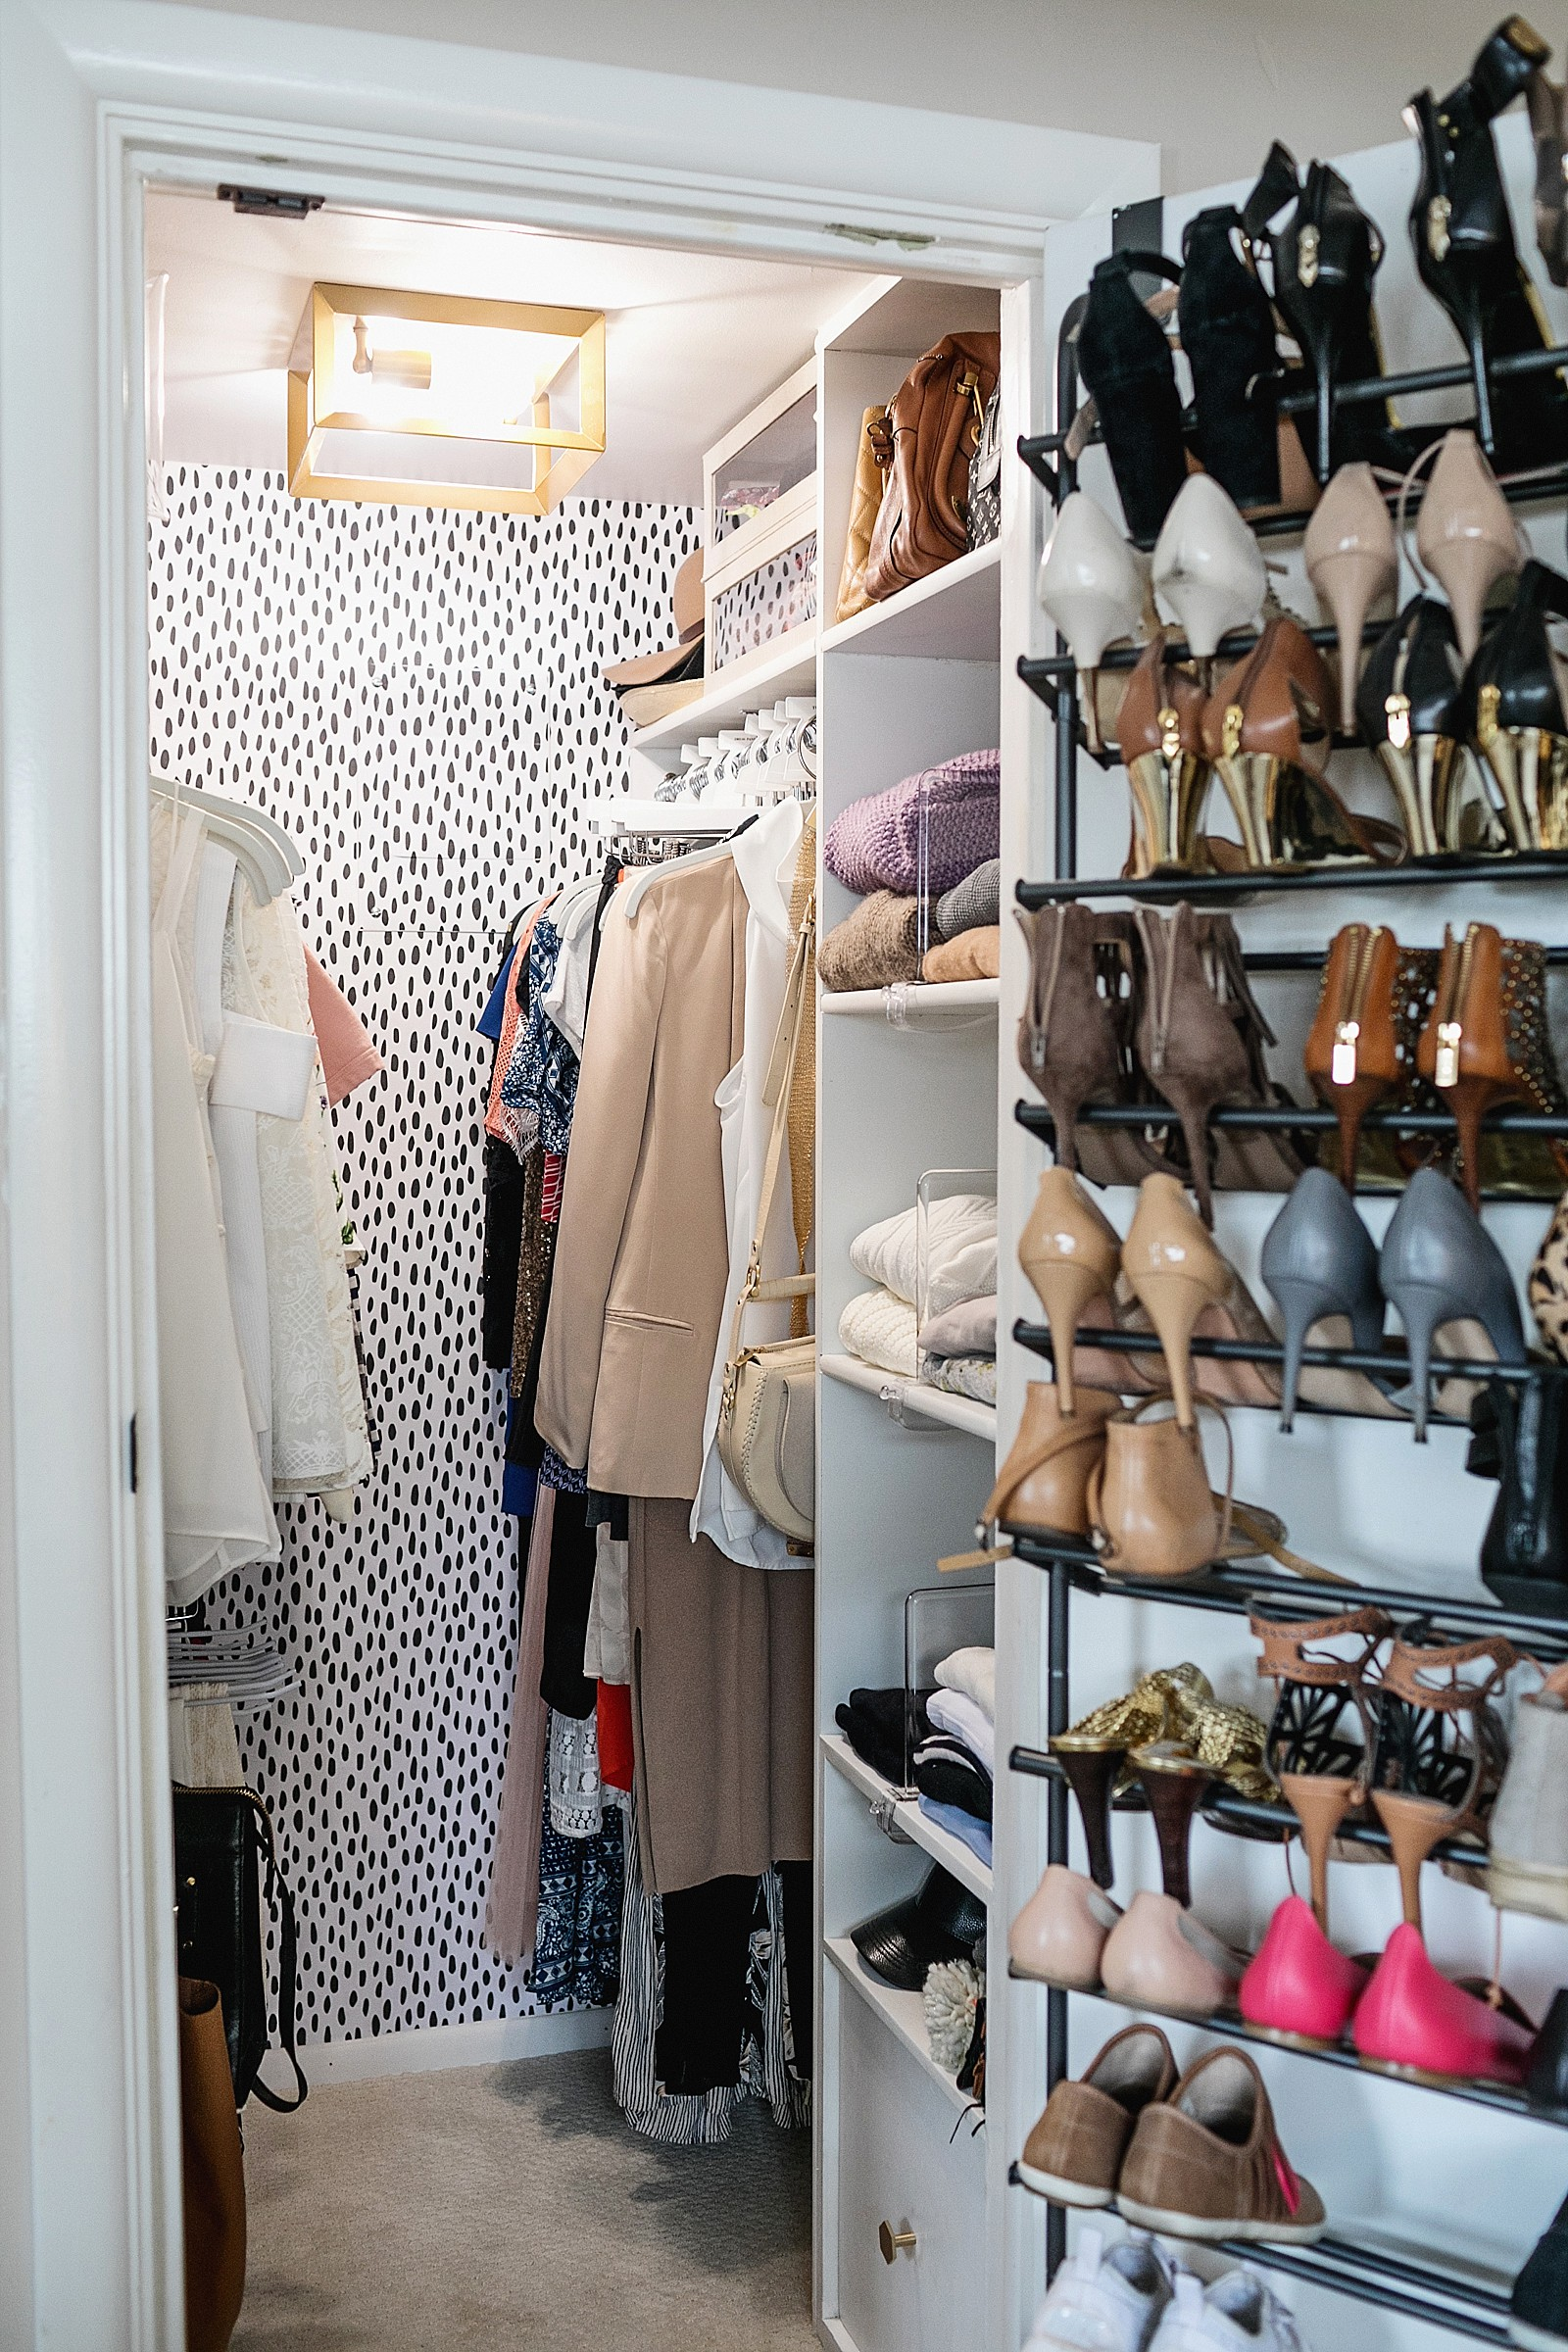 closet open with shoes on the door to explain how to sell closet items used clothing online through an app called poshmark